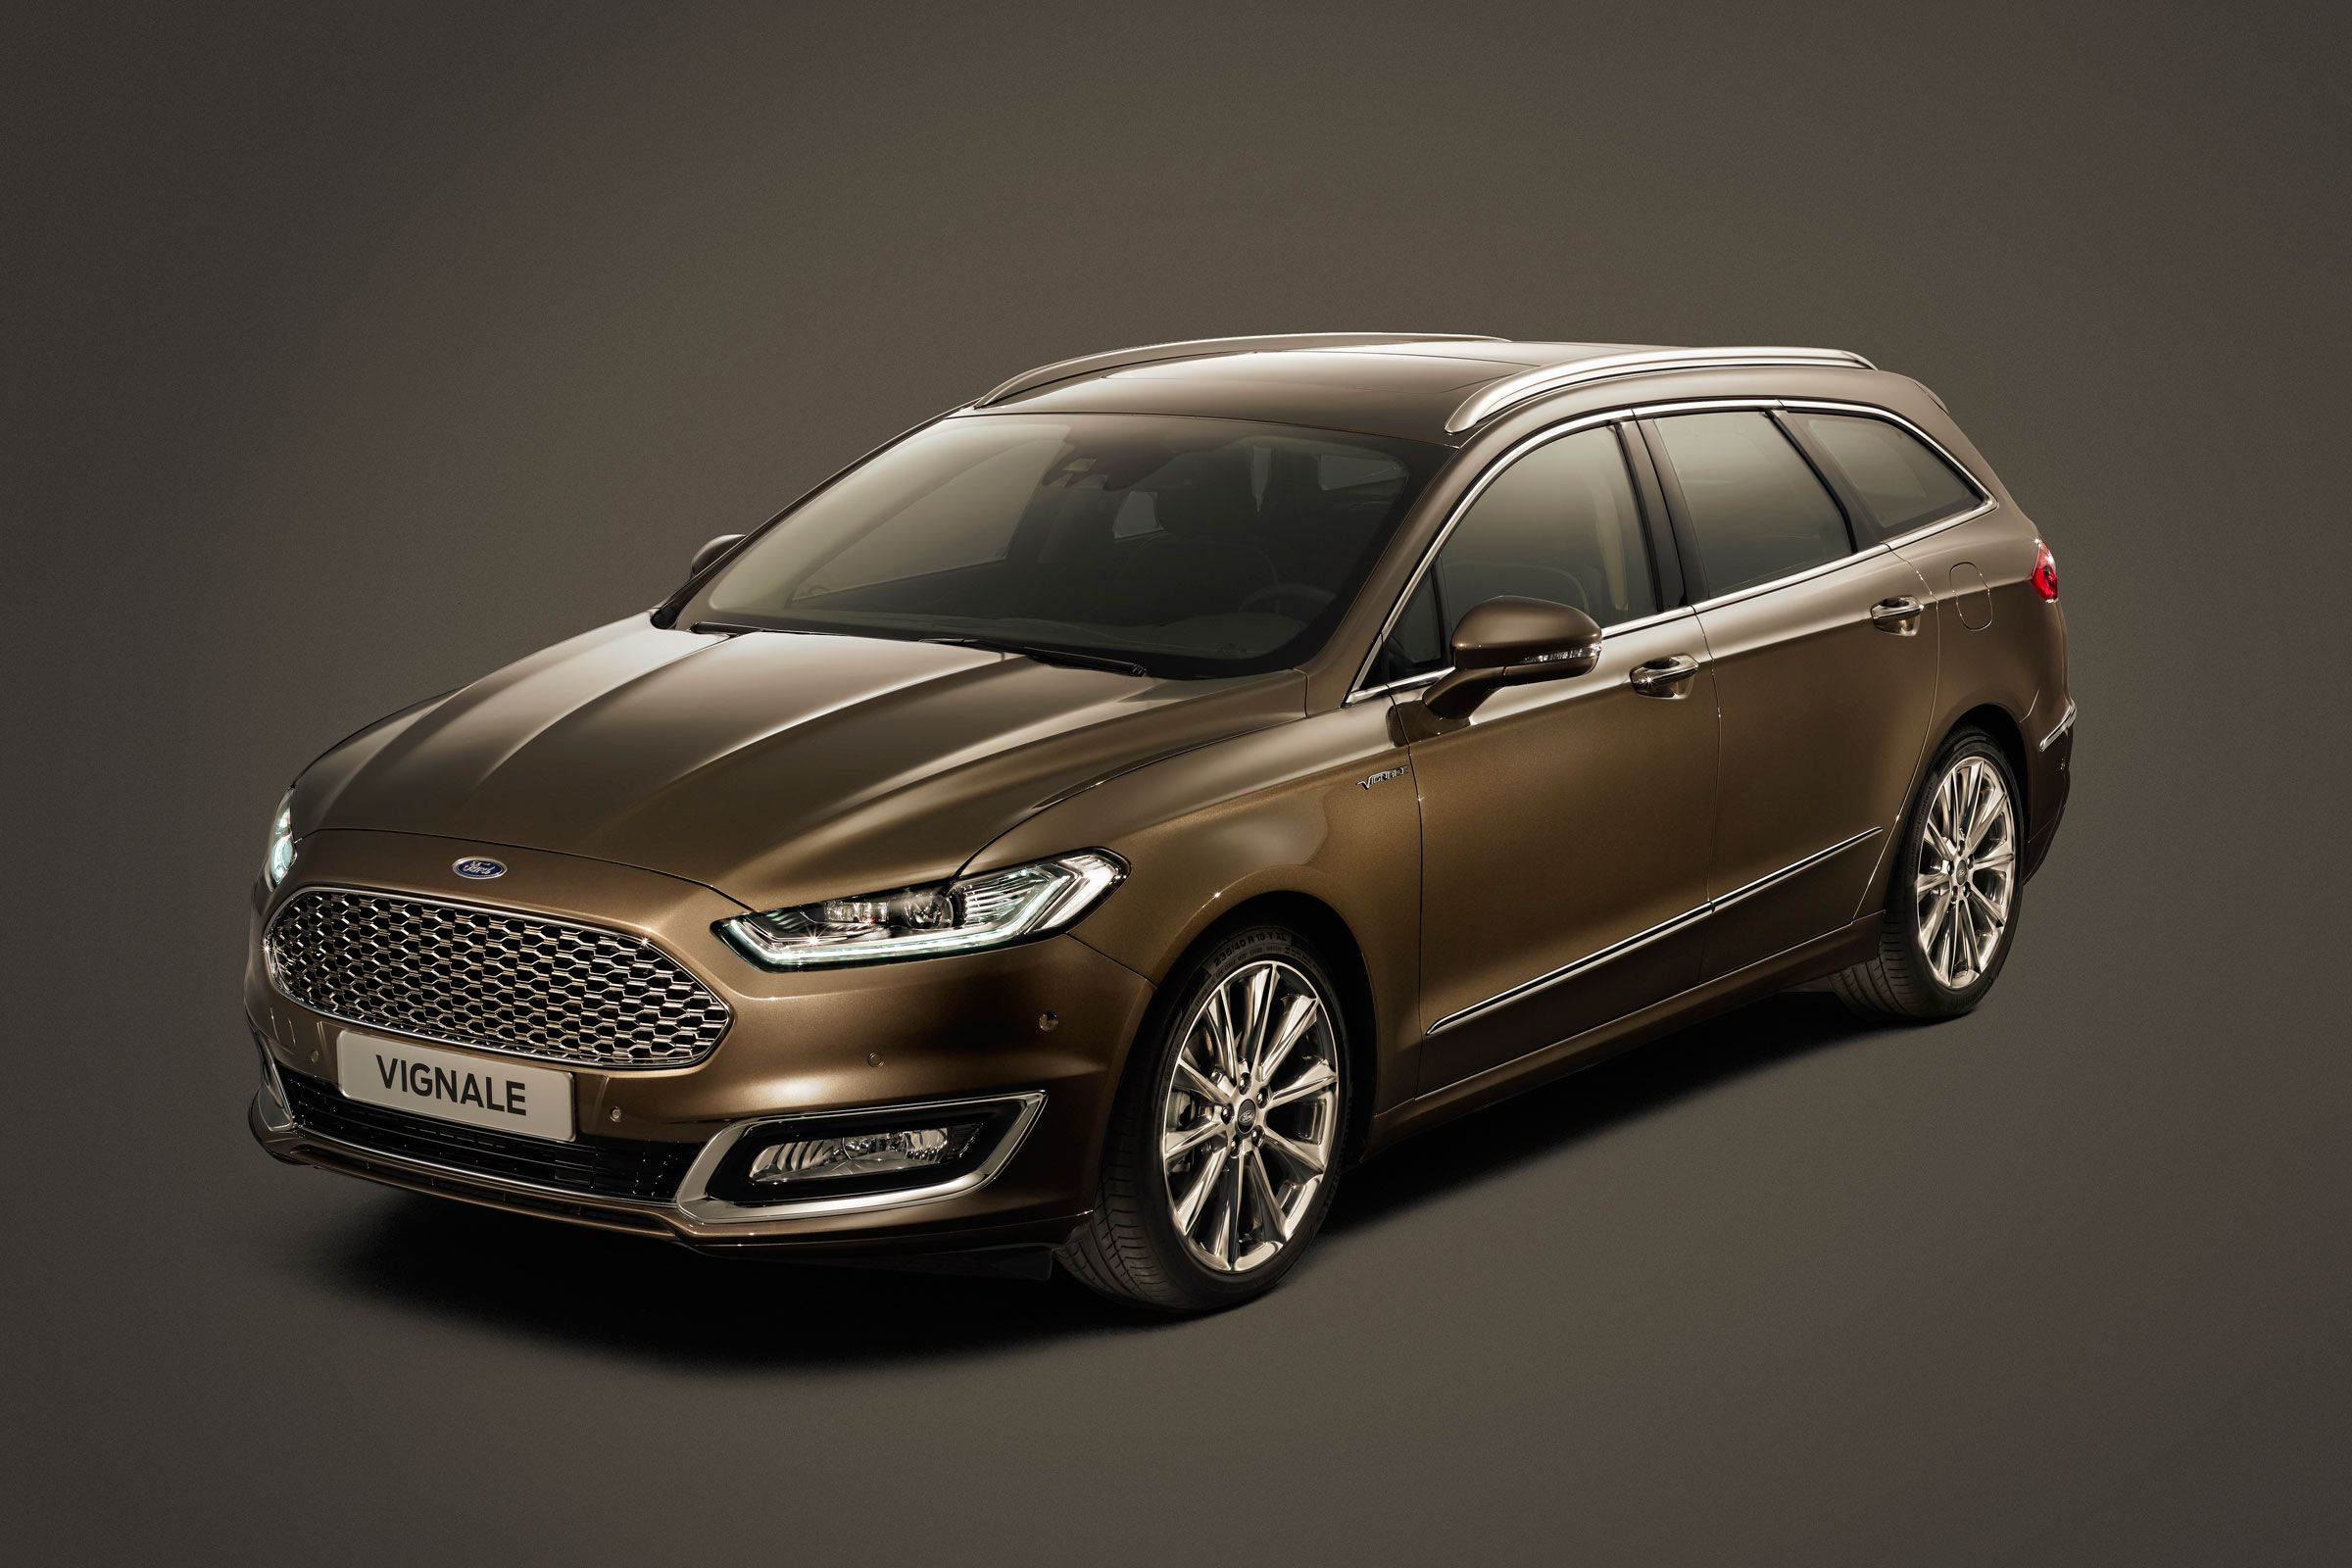 2019 Ford Focus Vignale Ford Focus 2019 Ford Ford